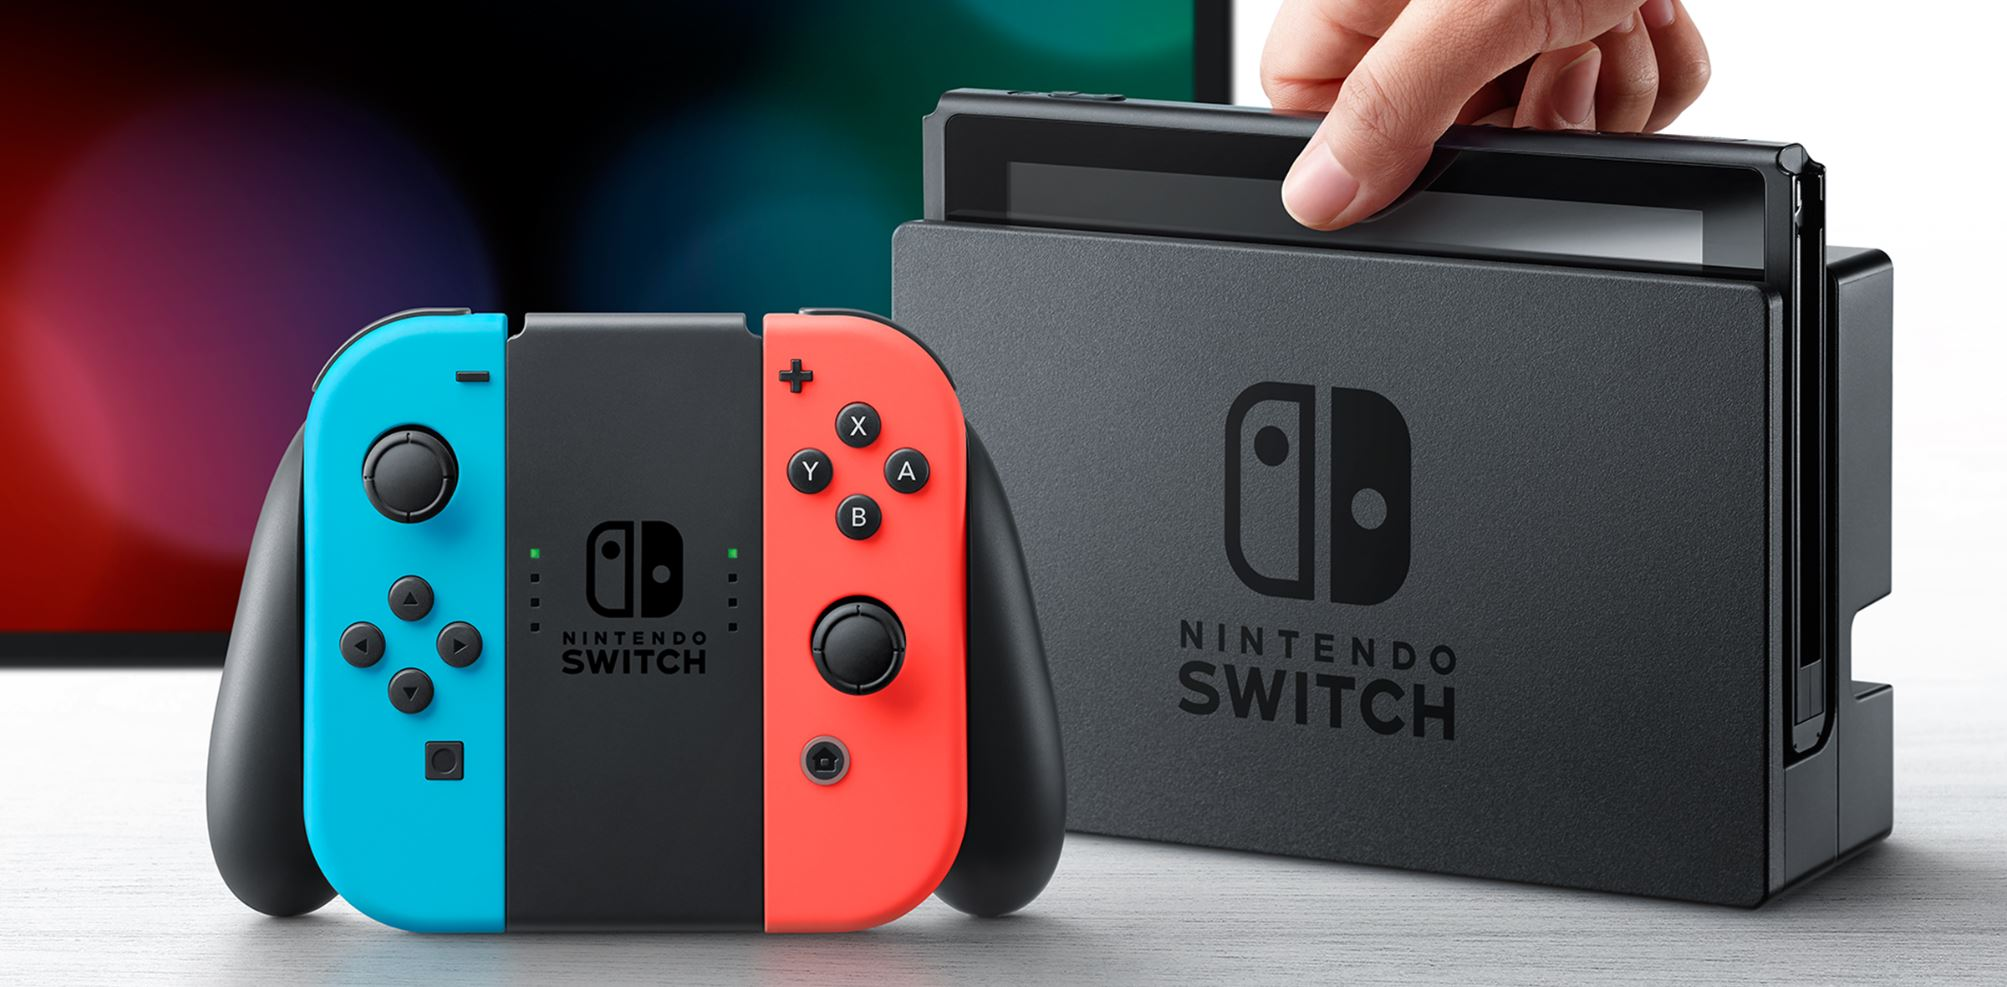 Nintendo Switch device Hackers Target Nintendo Switch Accounts – Here's How To Protect Yours